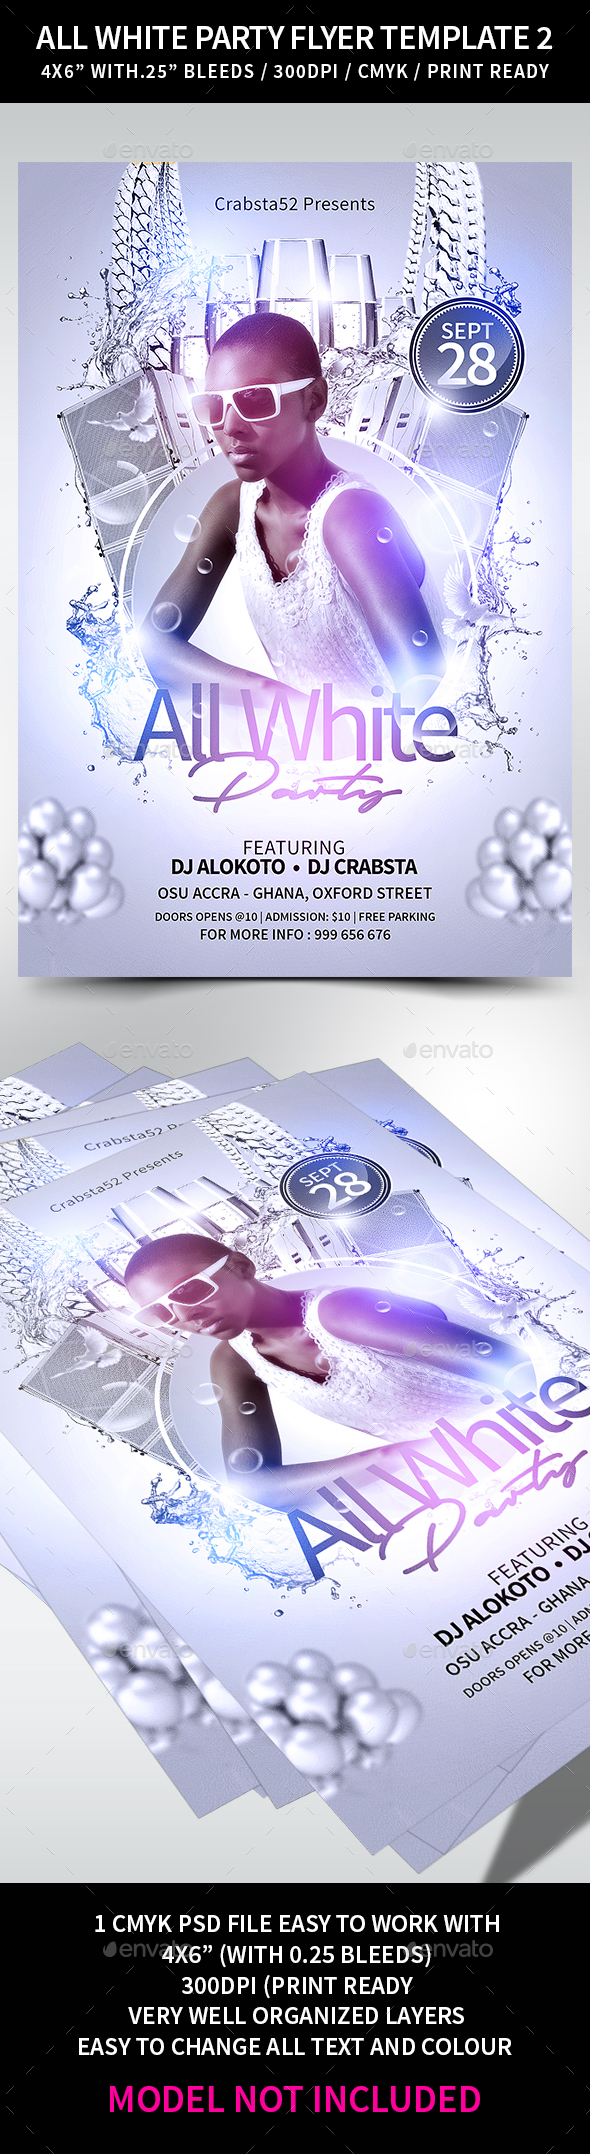 All White Party Flyer Template 2